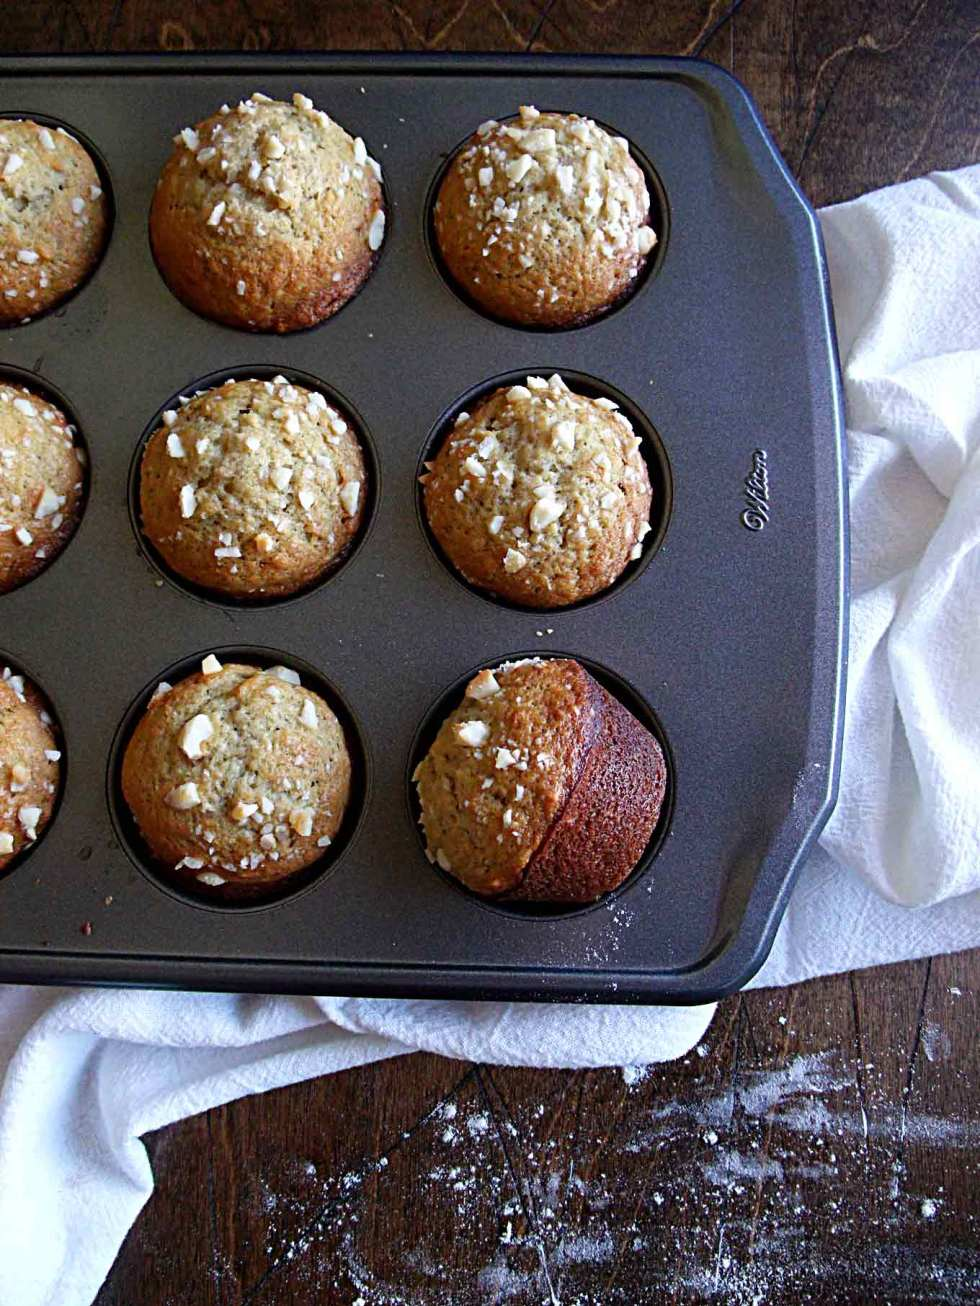 Banana Macadamia Nut Muffins - inspired by the muffins at Huggo's in Kona, Hawaii!